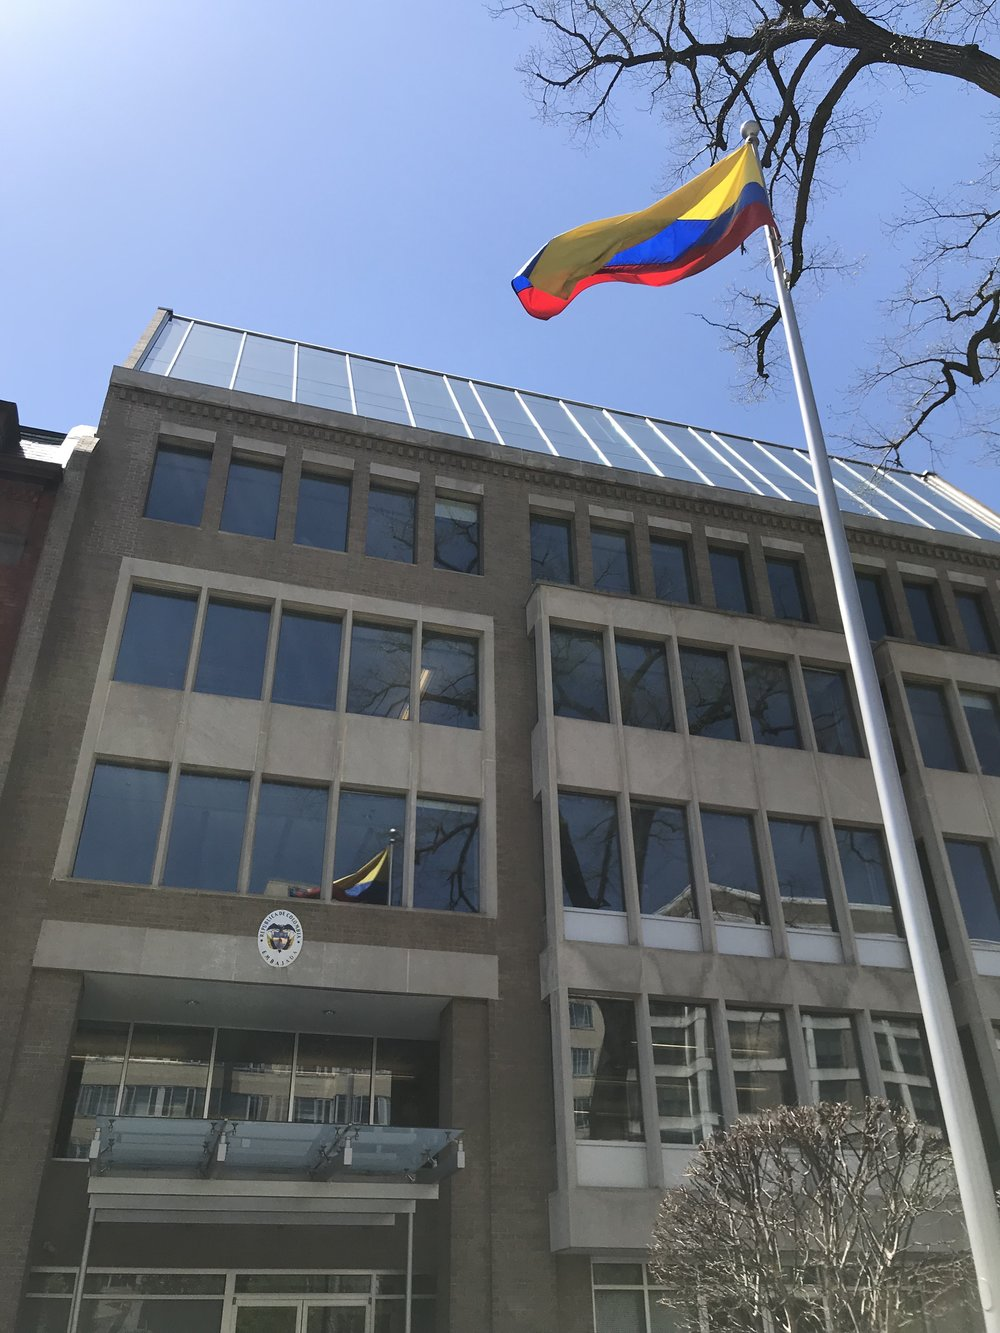 The Embassy of Colombia.